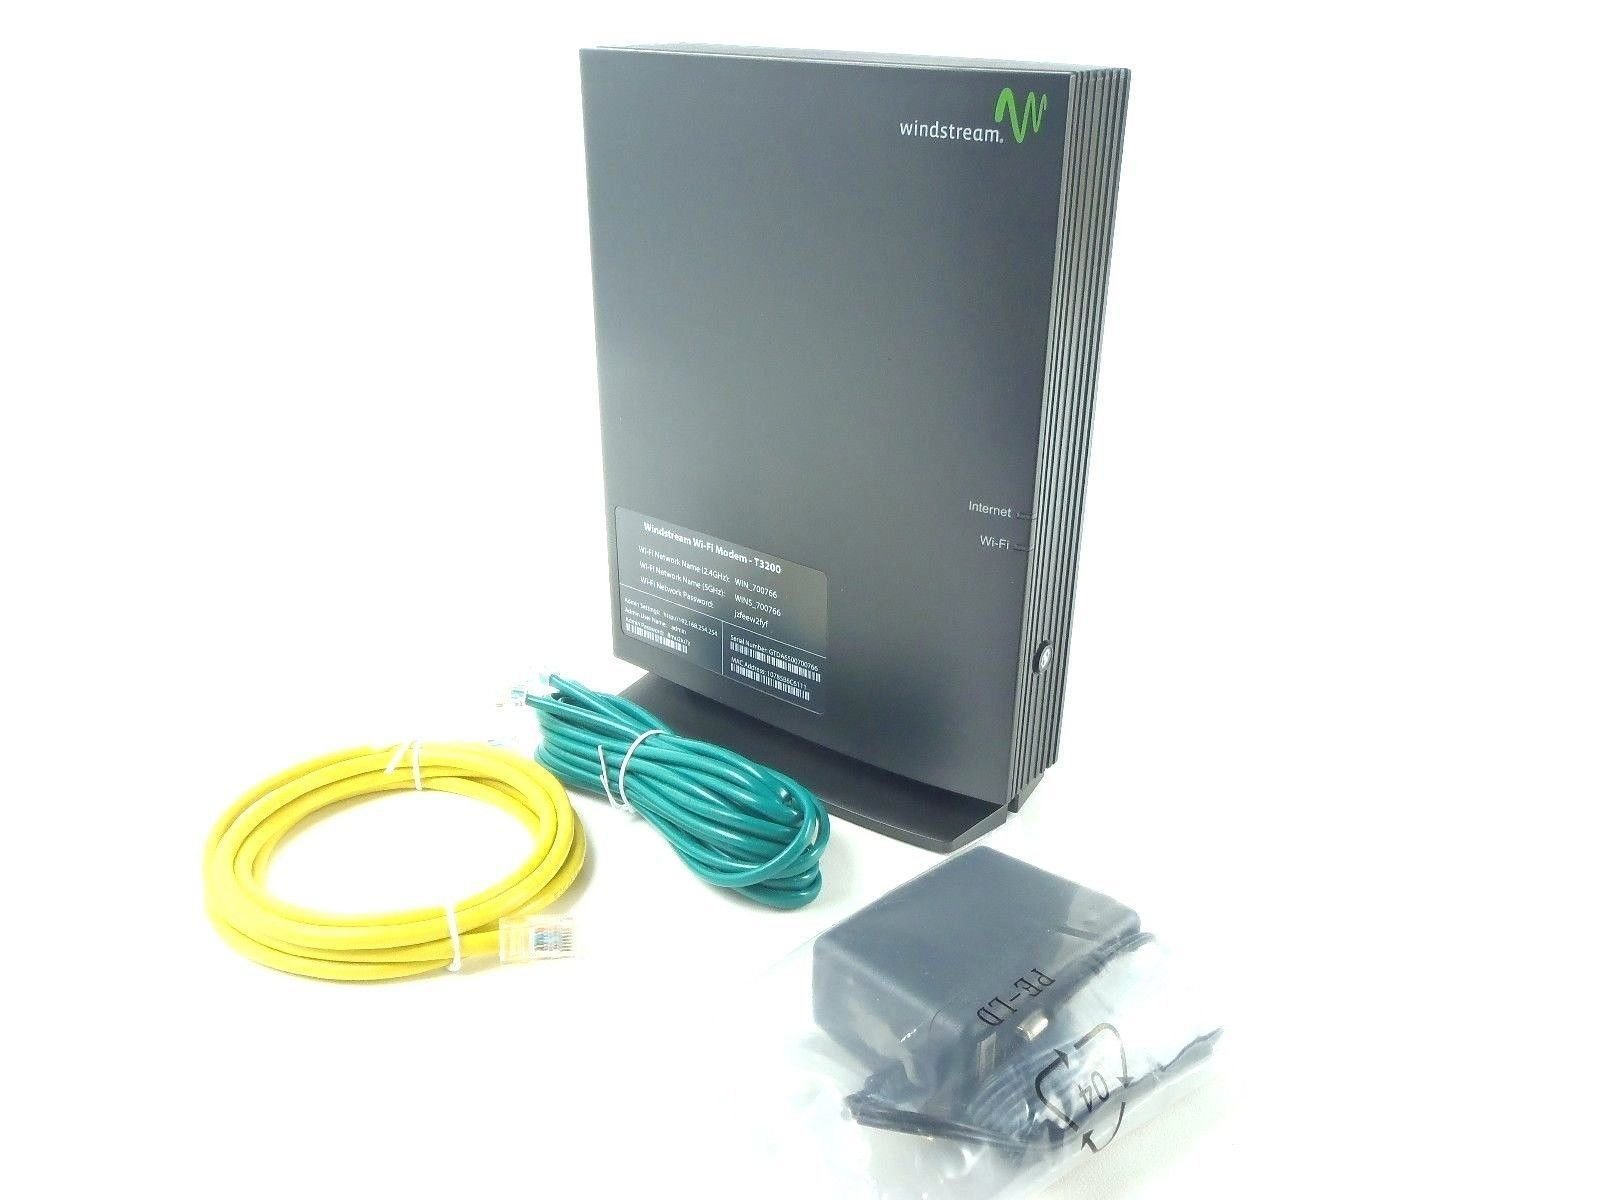 Windstream Actiontec T3200 xDSL Wi-Fi Premium Wireless Router/Modem 1GIG by WINDSTREAM